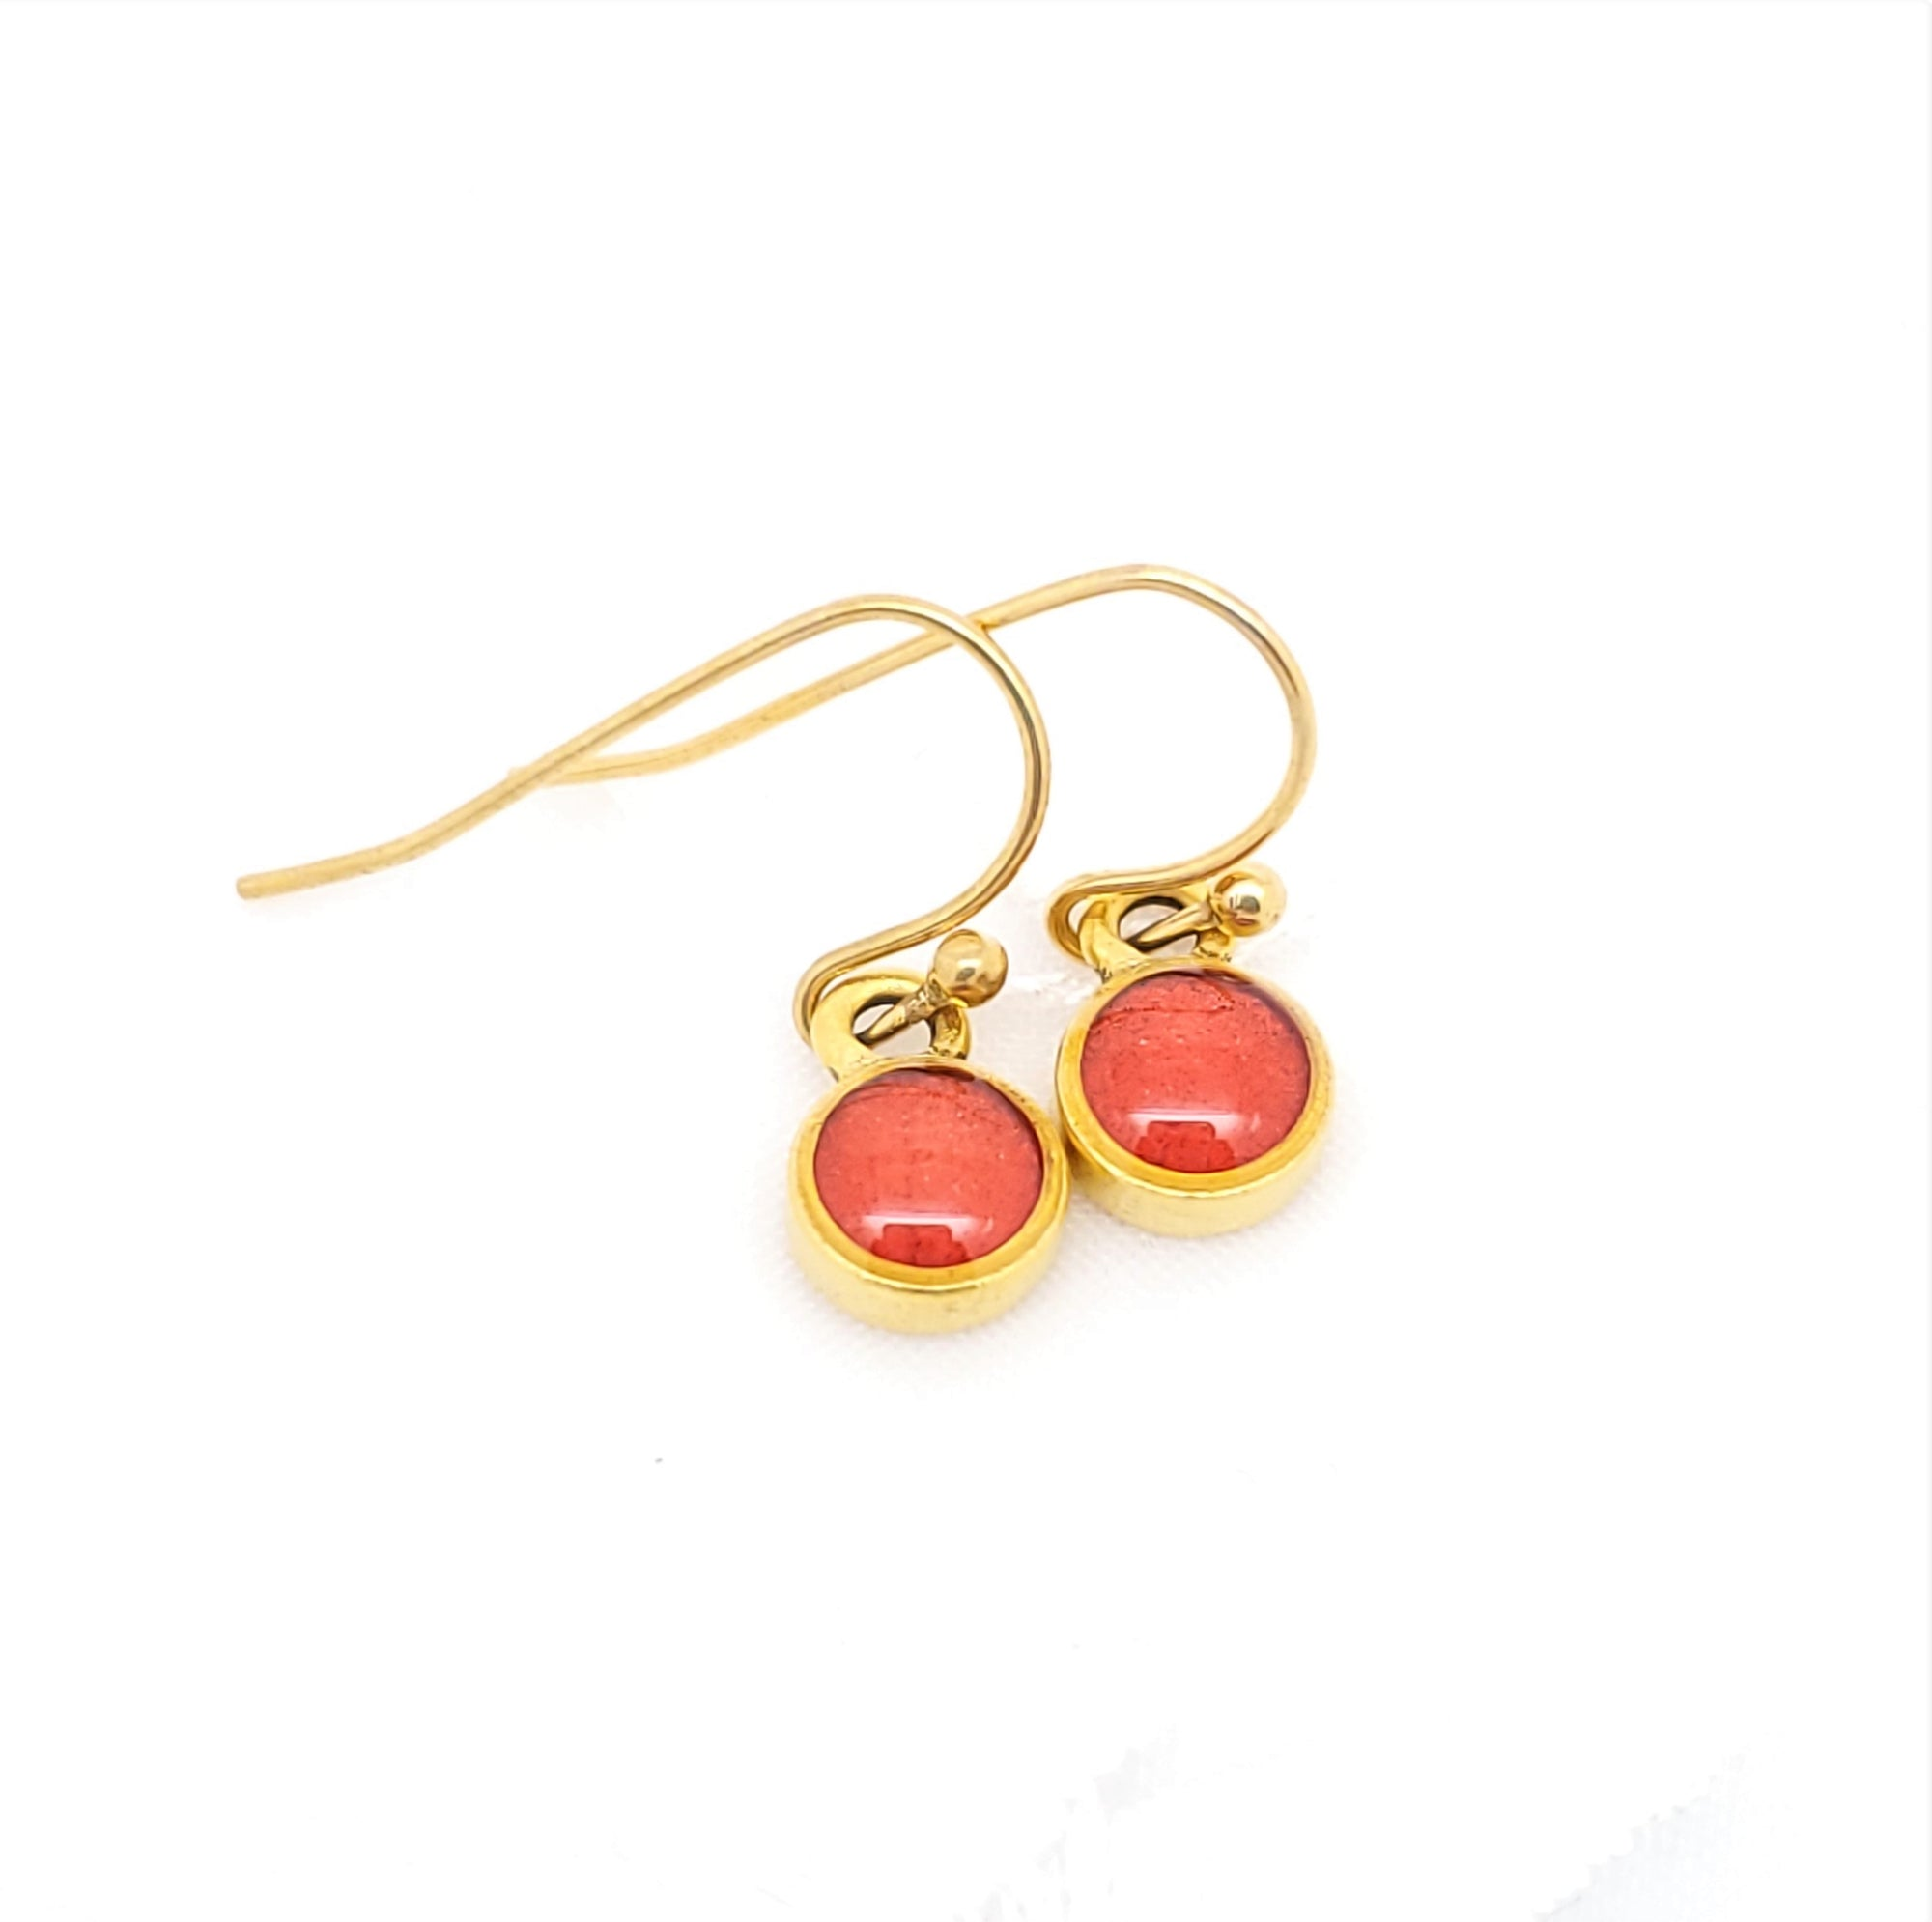 Antique Gold Tiny Round Earrings with Transparent Red-Orange Resin